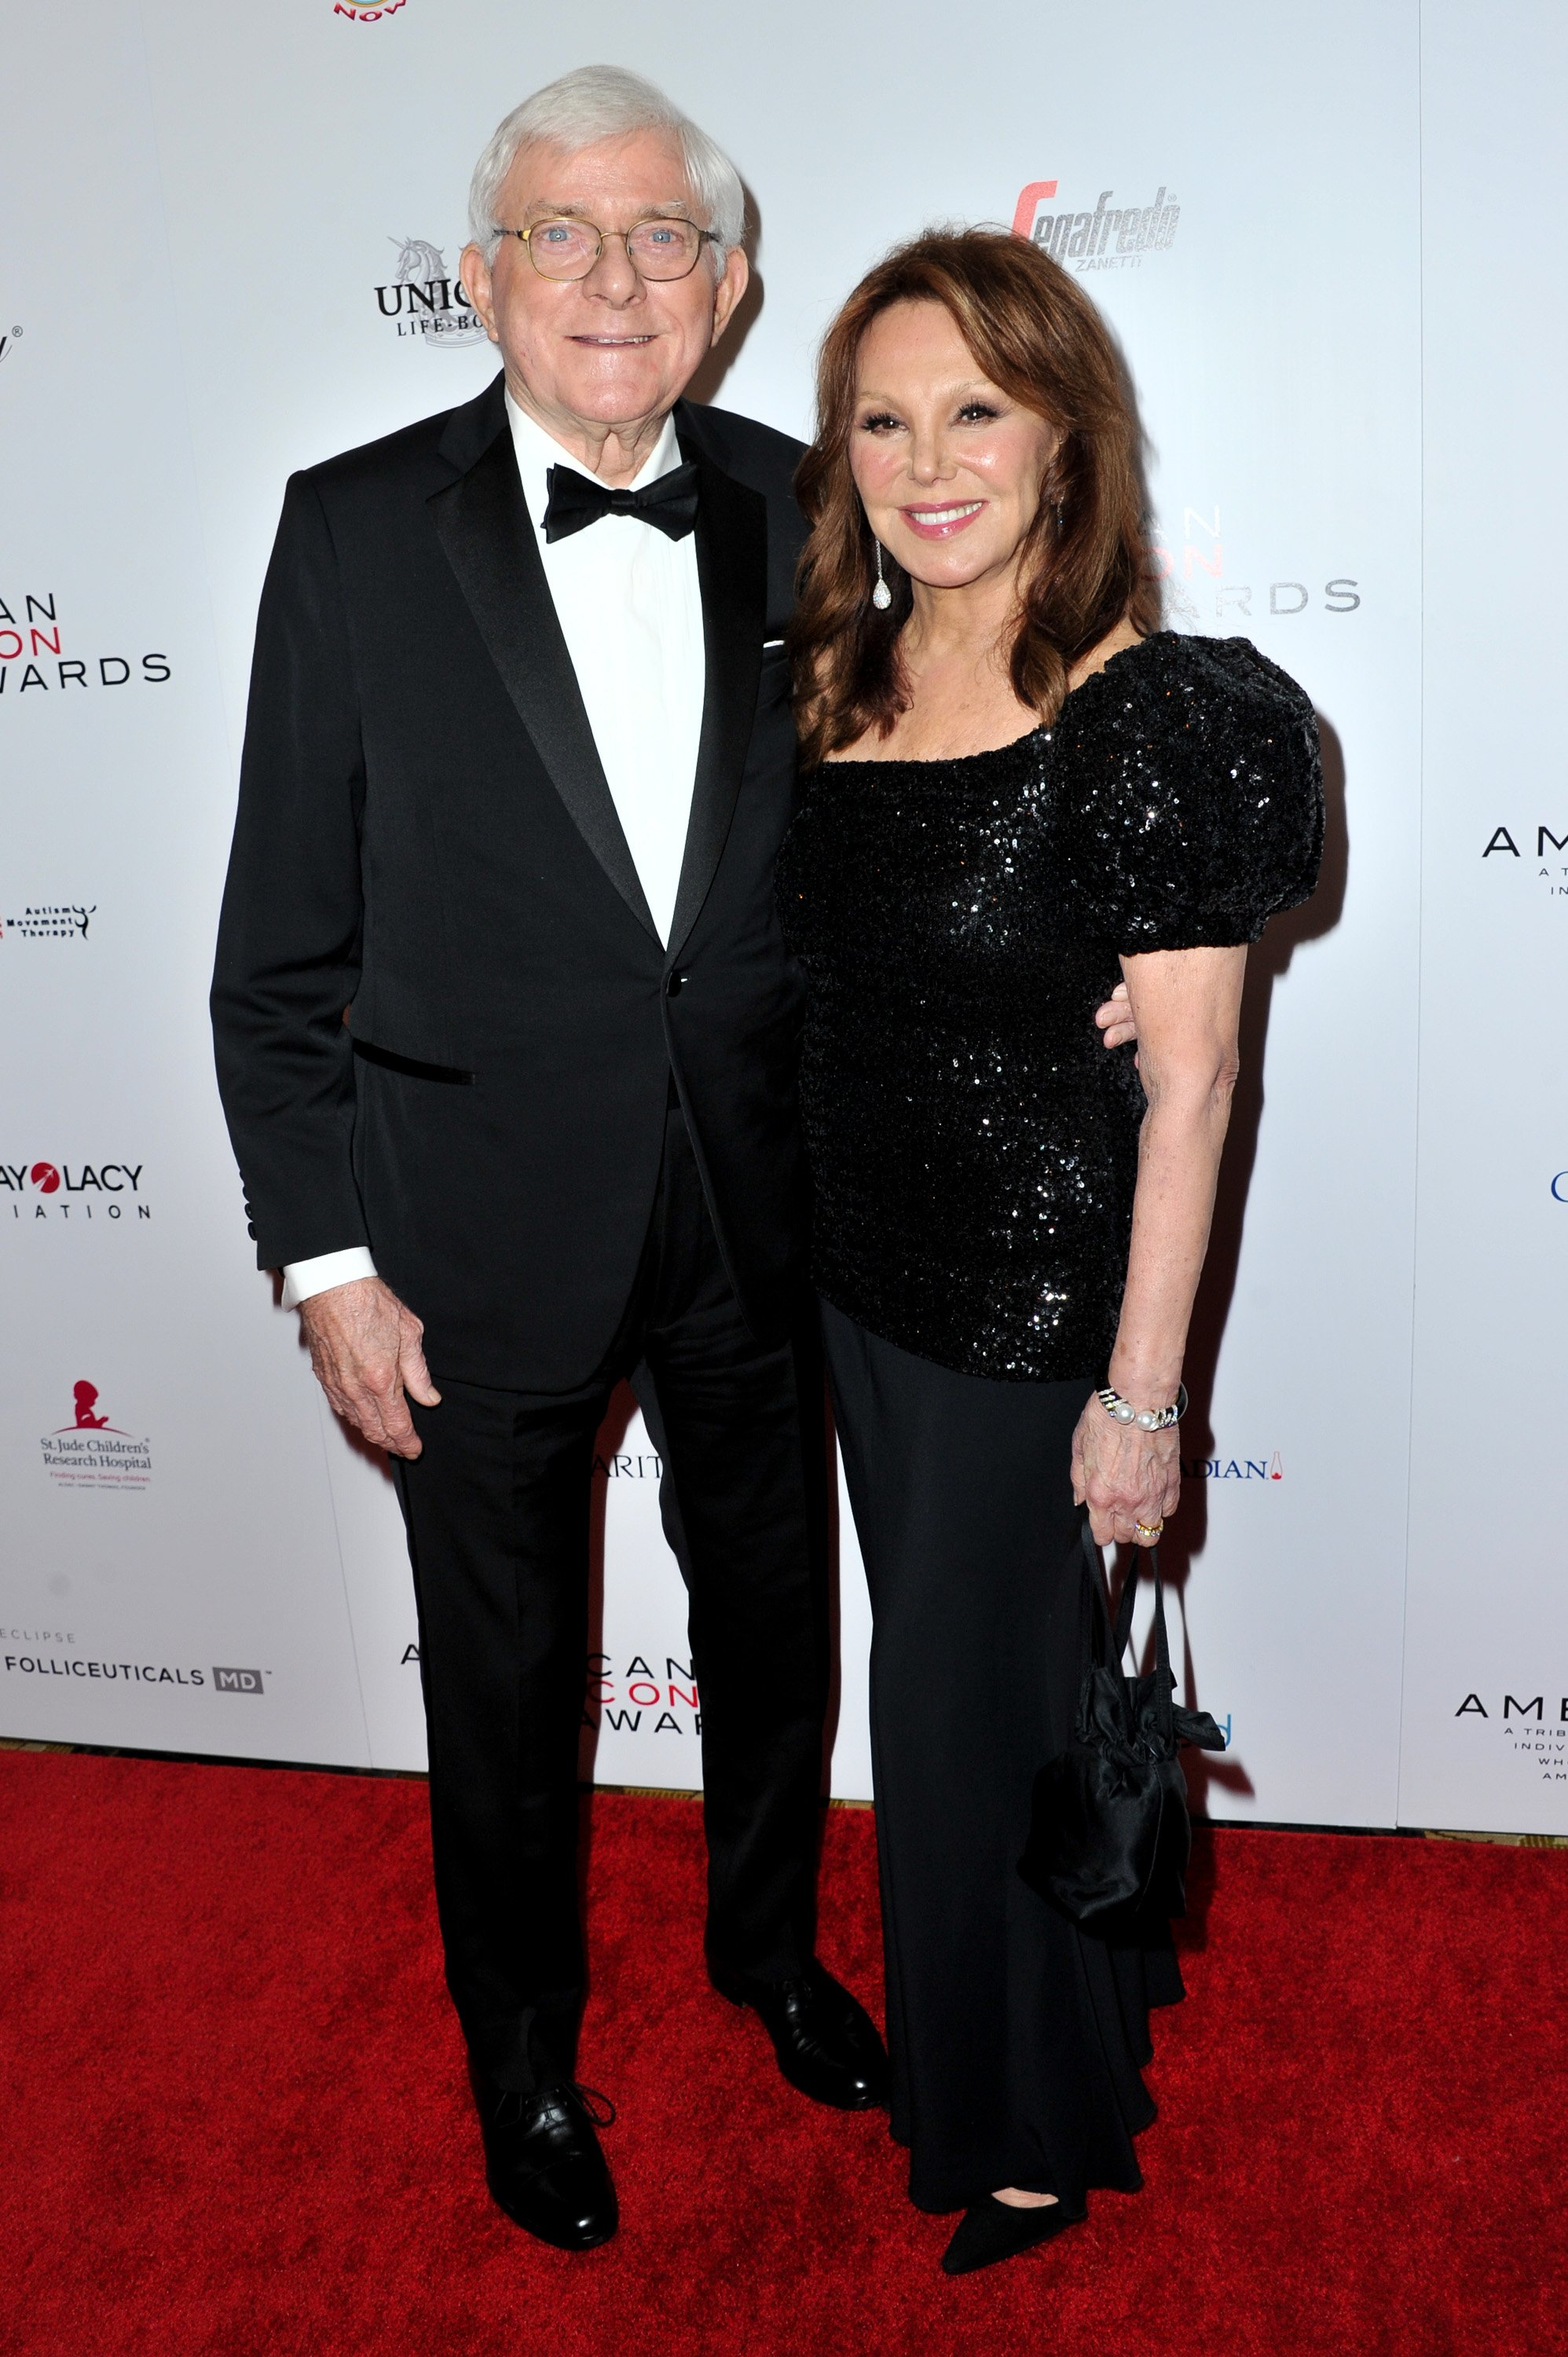 Marlo and Phil on the red carpet. | Source: Instagram/marlothomas